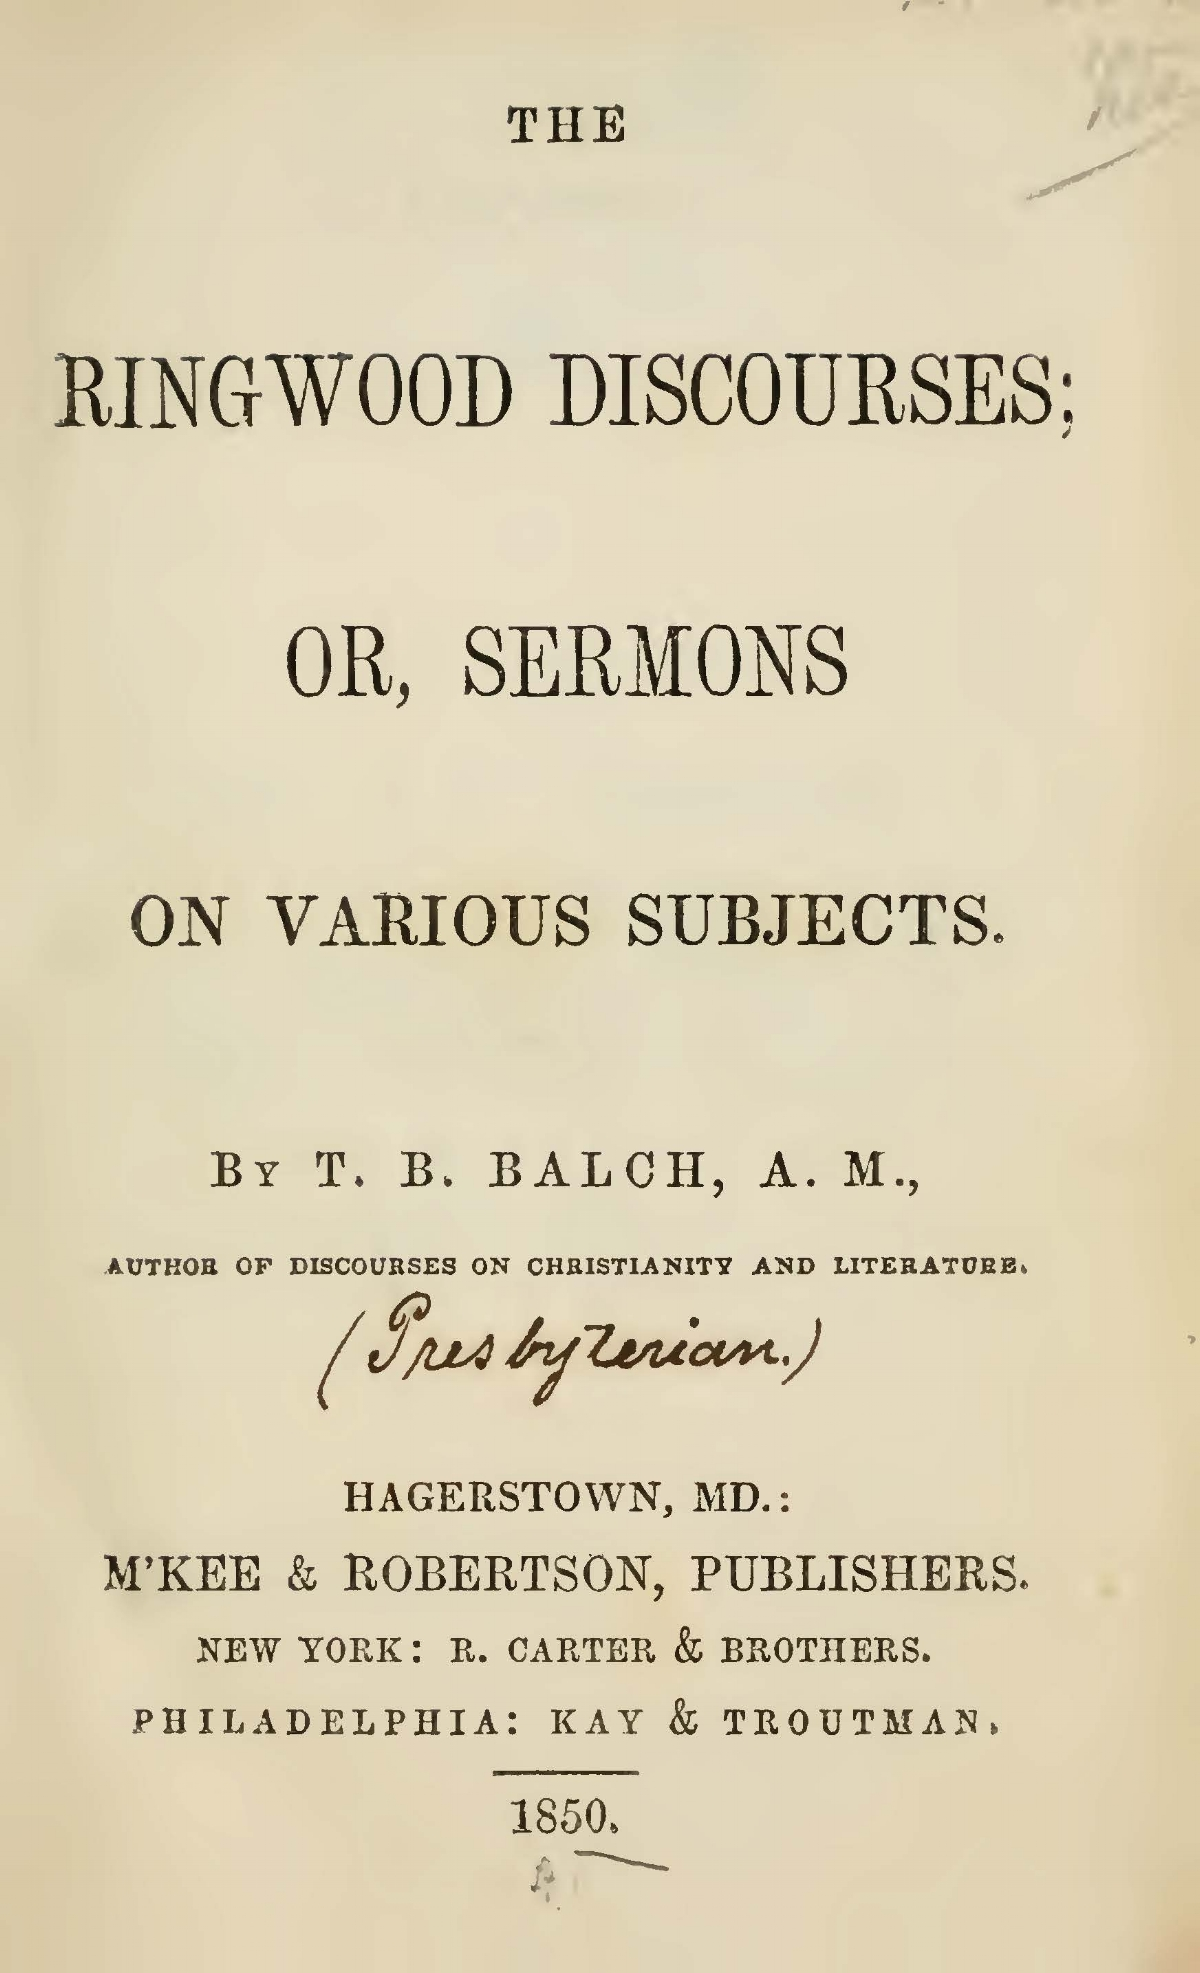 Balch, Thomas Bloomer, The Ringwood Discourses Title Page.jpg